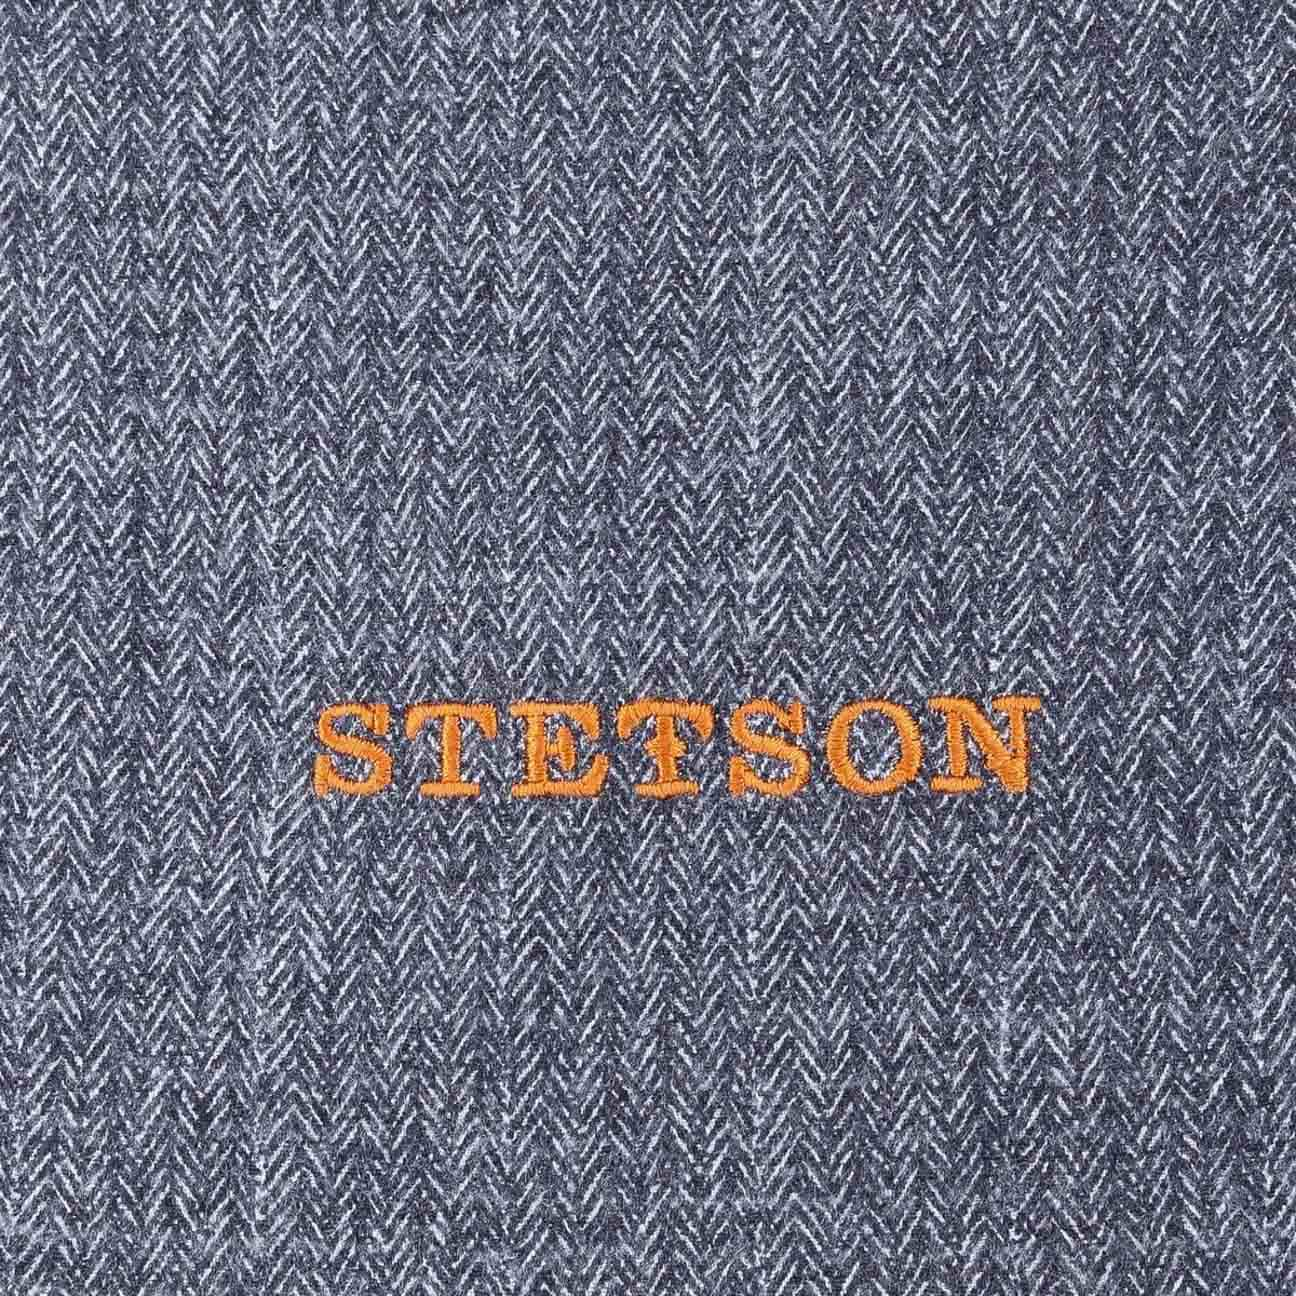 ... Hatteras Donegal Blue Coppola by Stetson - blu 5 ... c190300a0afe